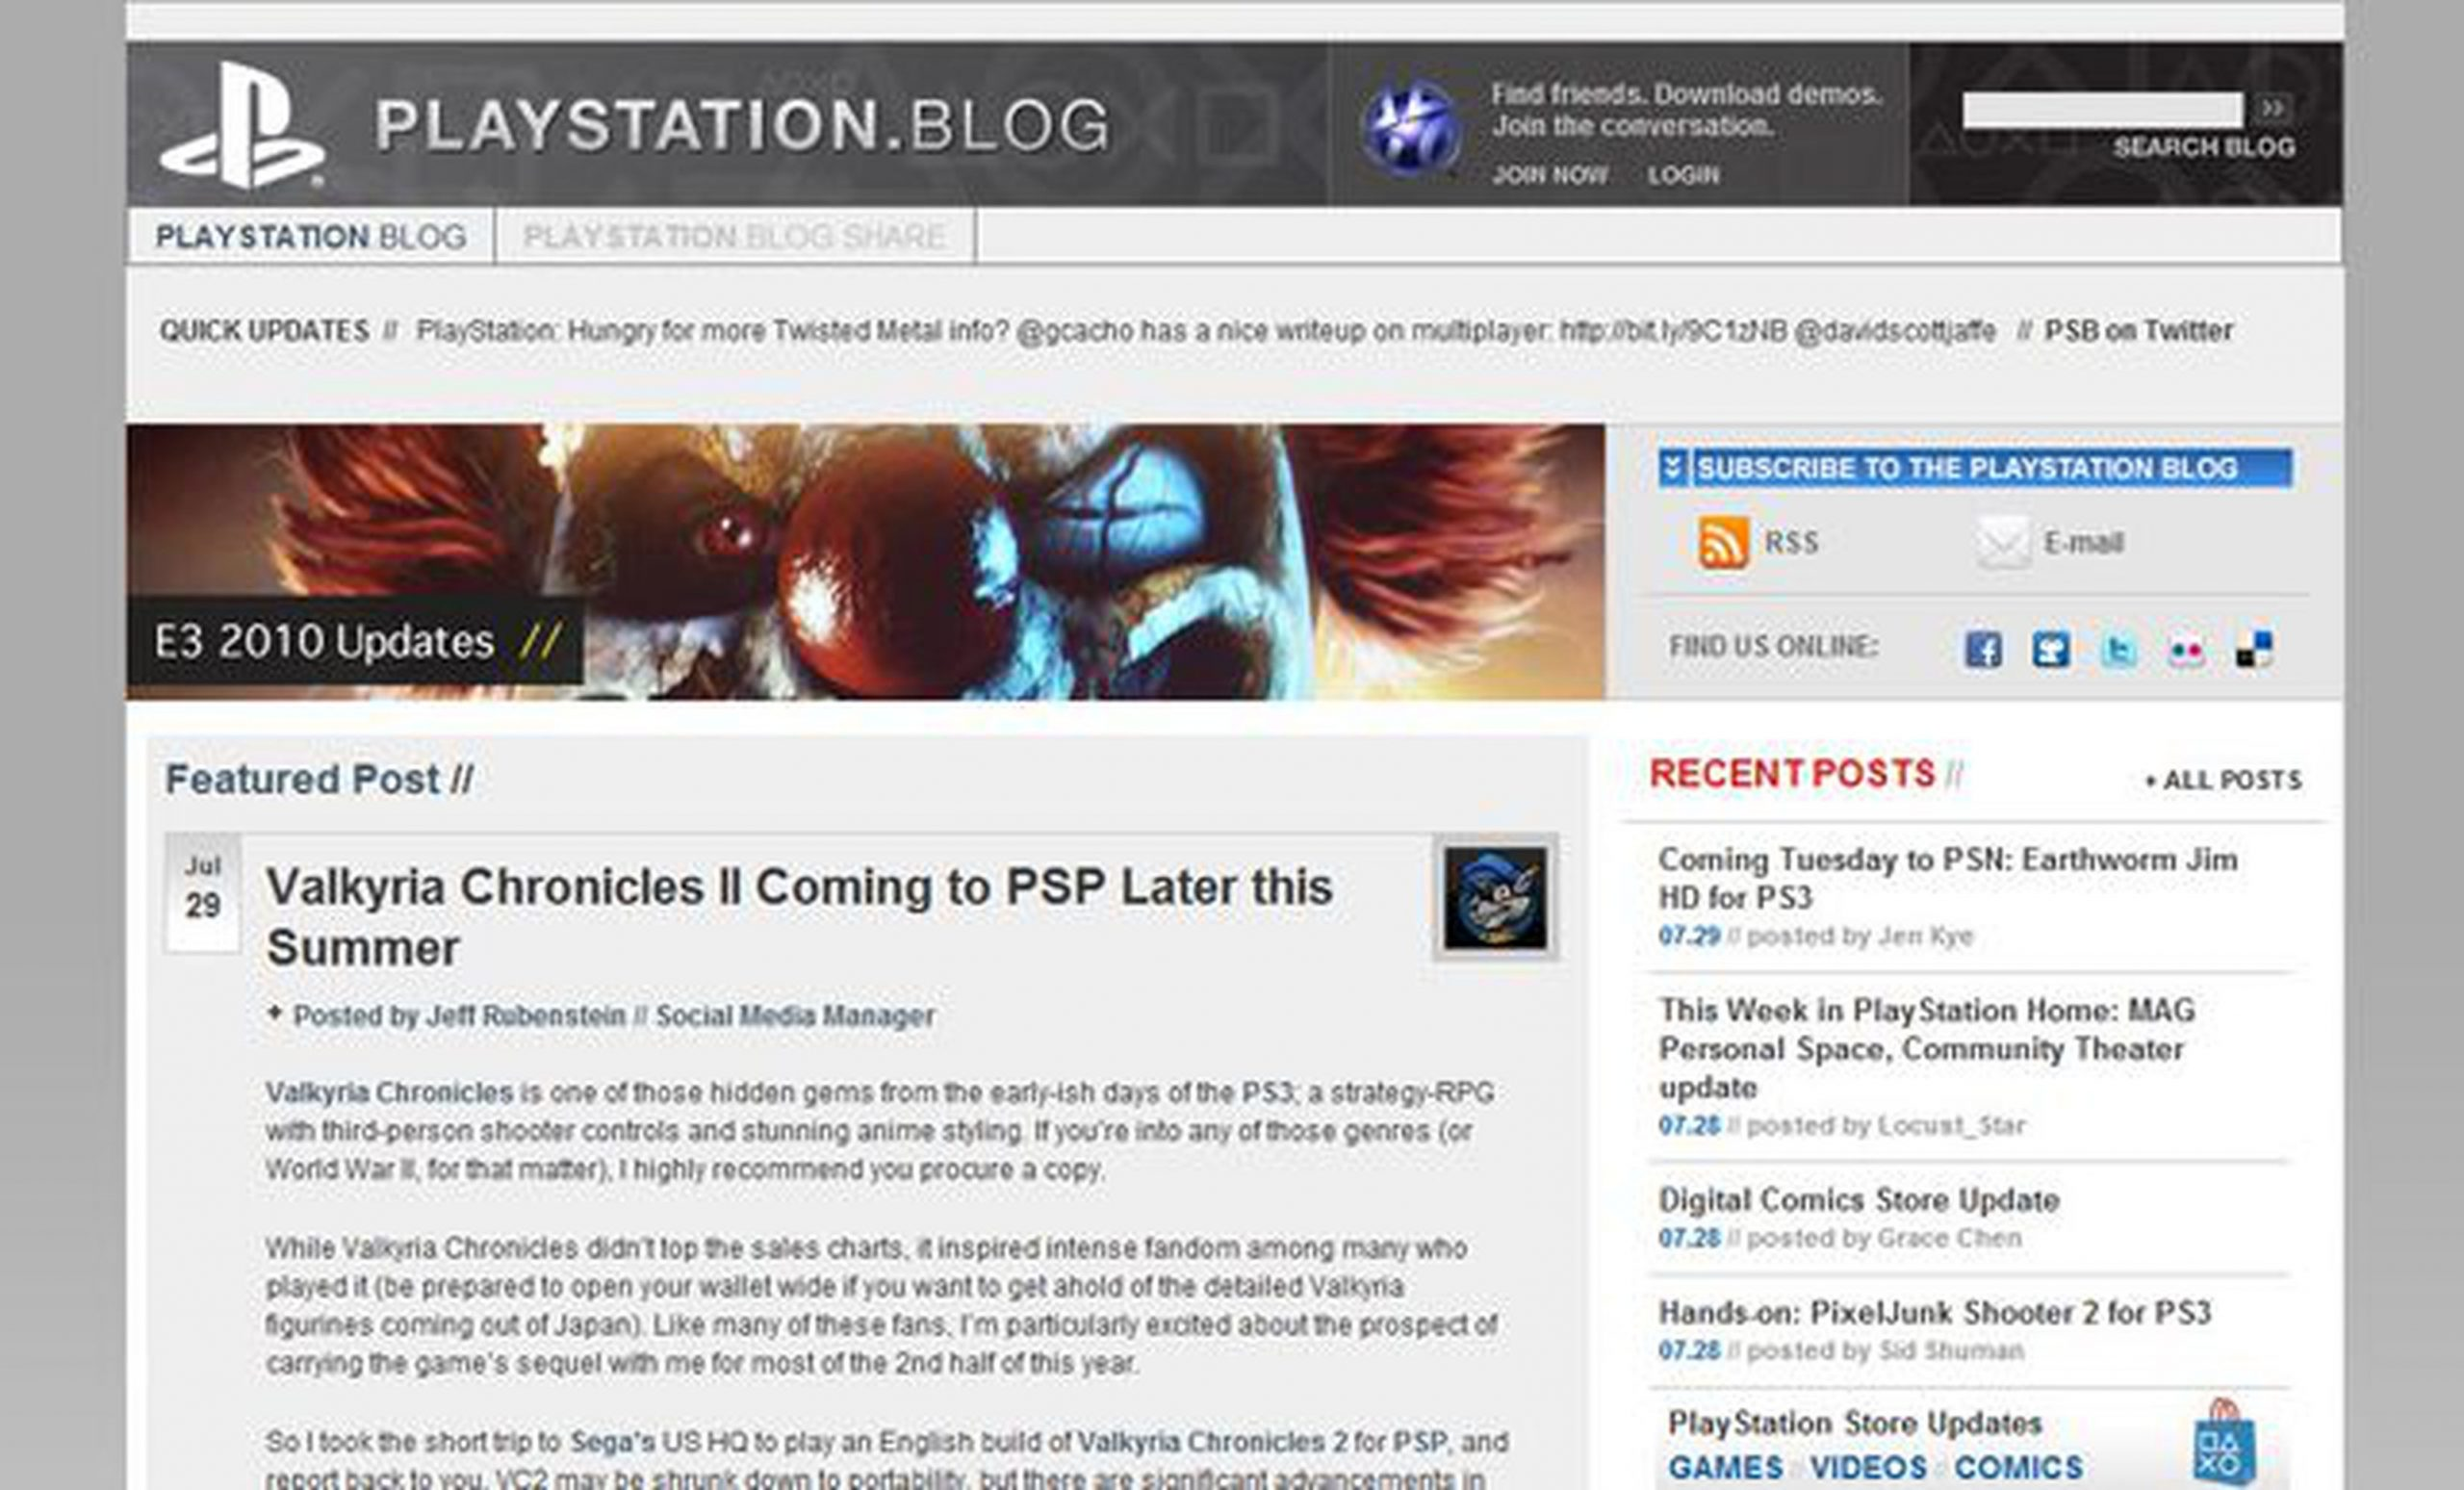 PlayStation.Blog: Get Ideas From Your Fans